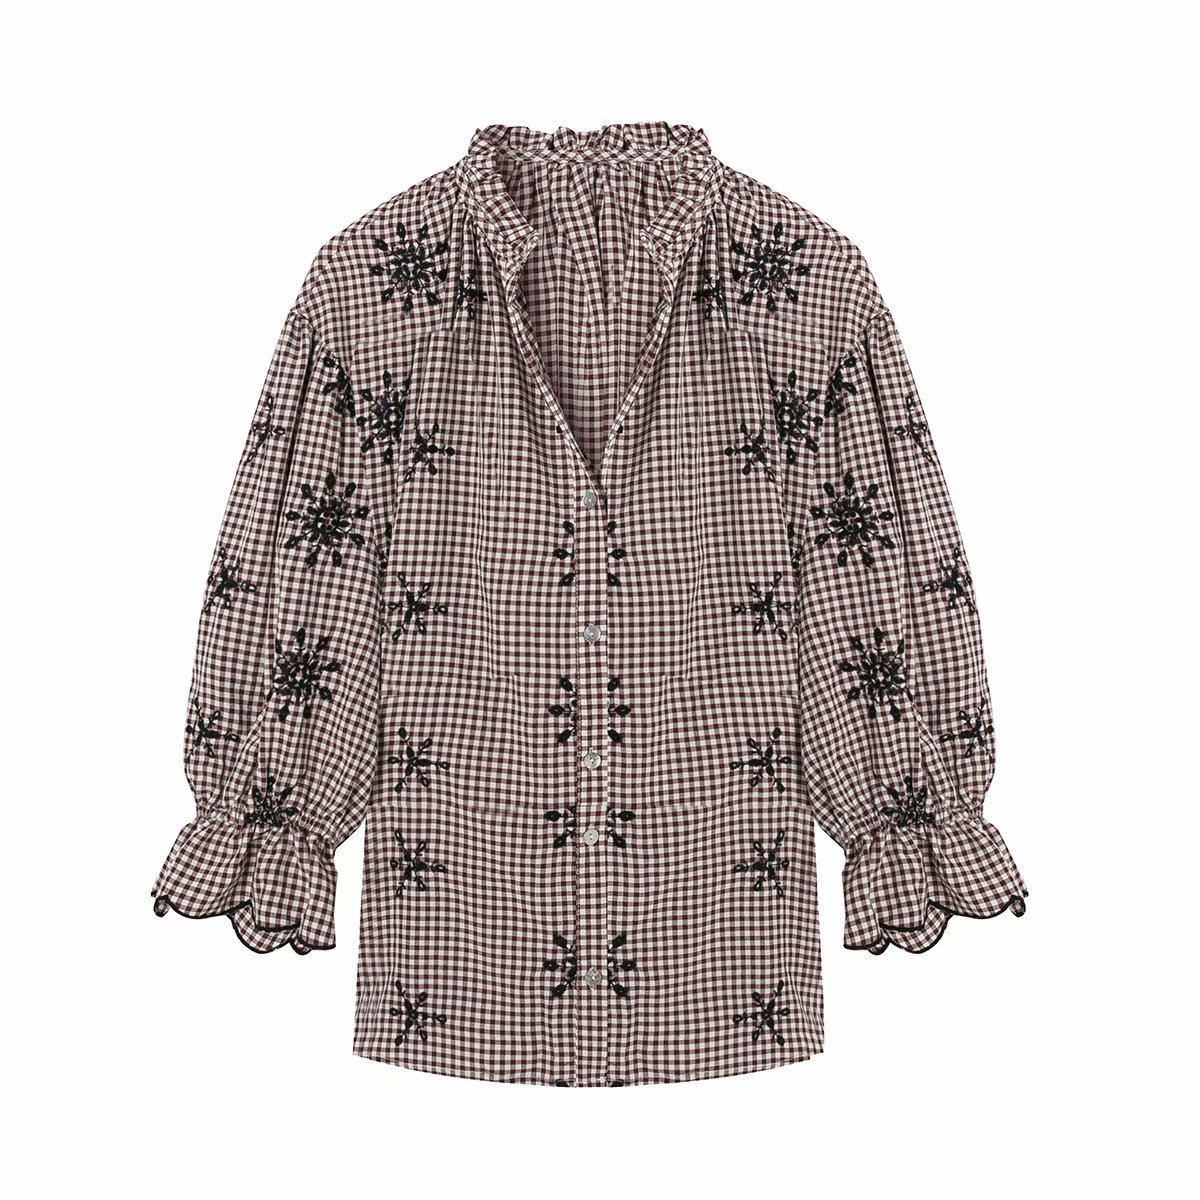 Autumn embroidered plaid women's ethnic style shirt